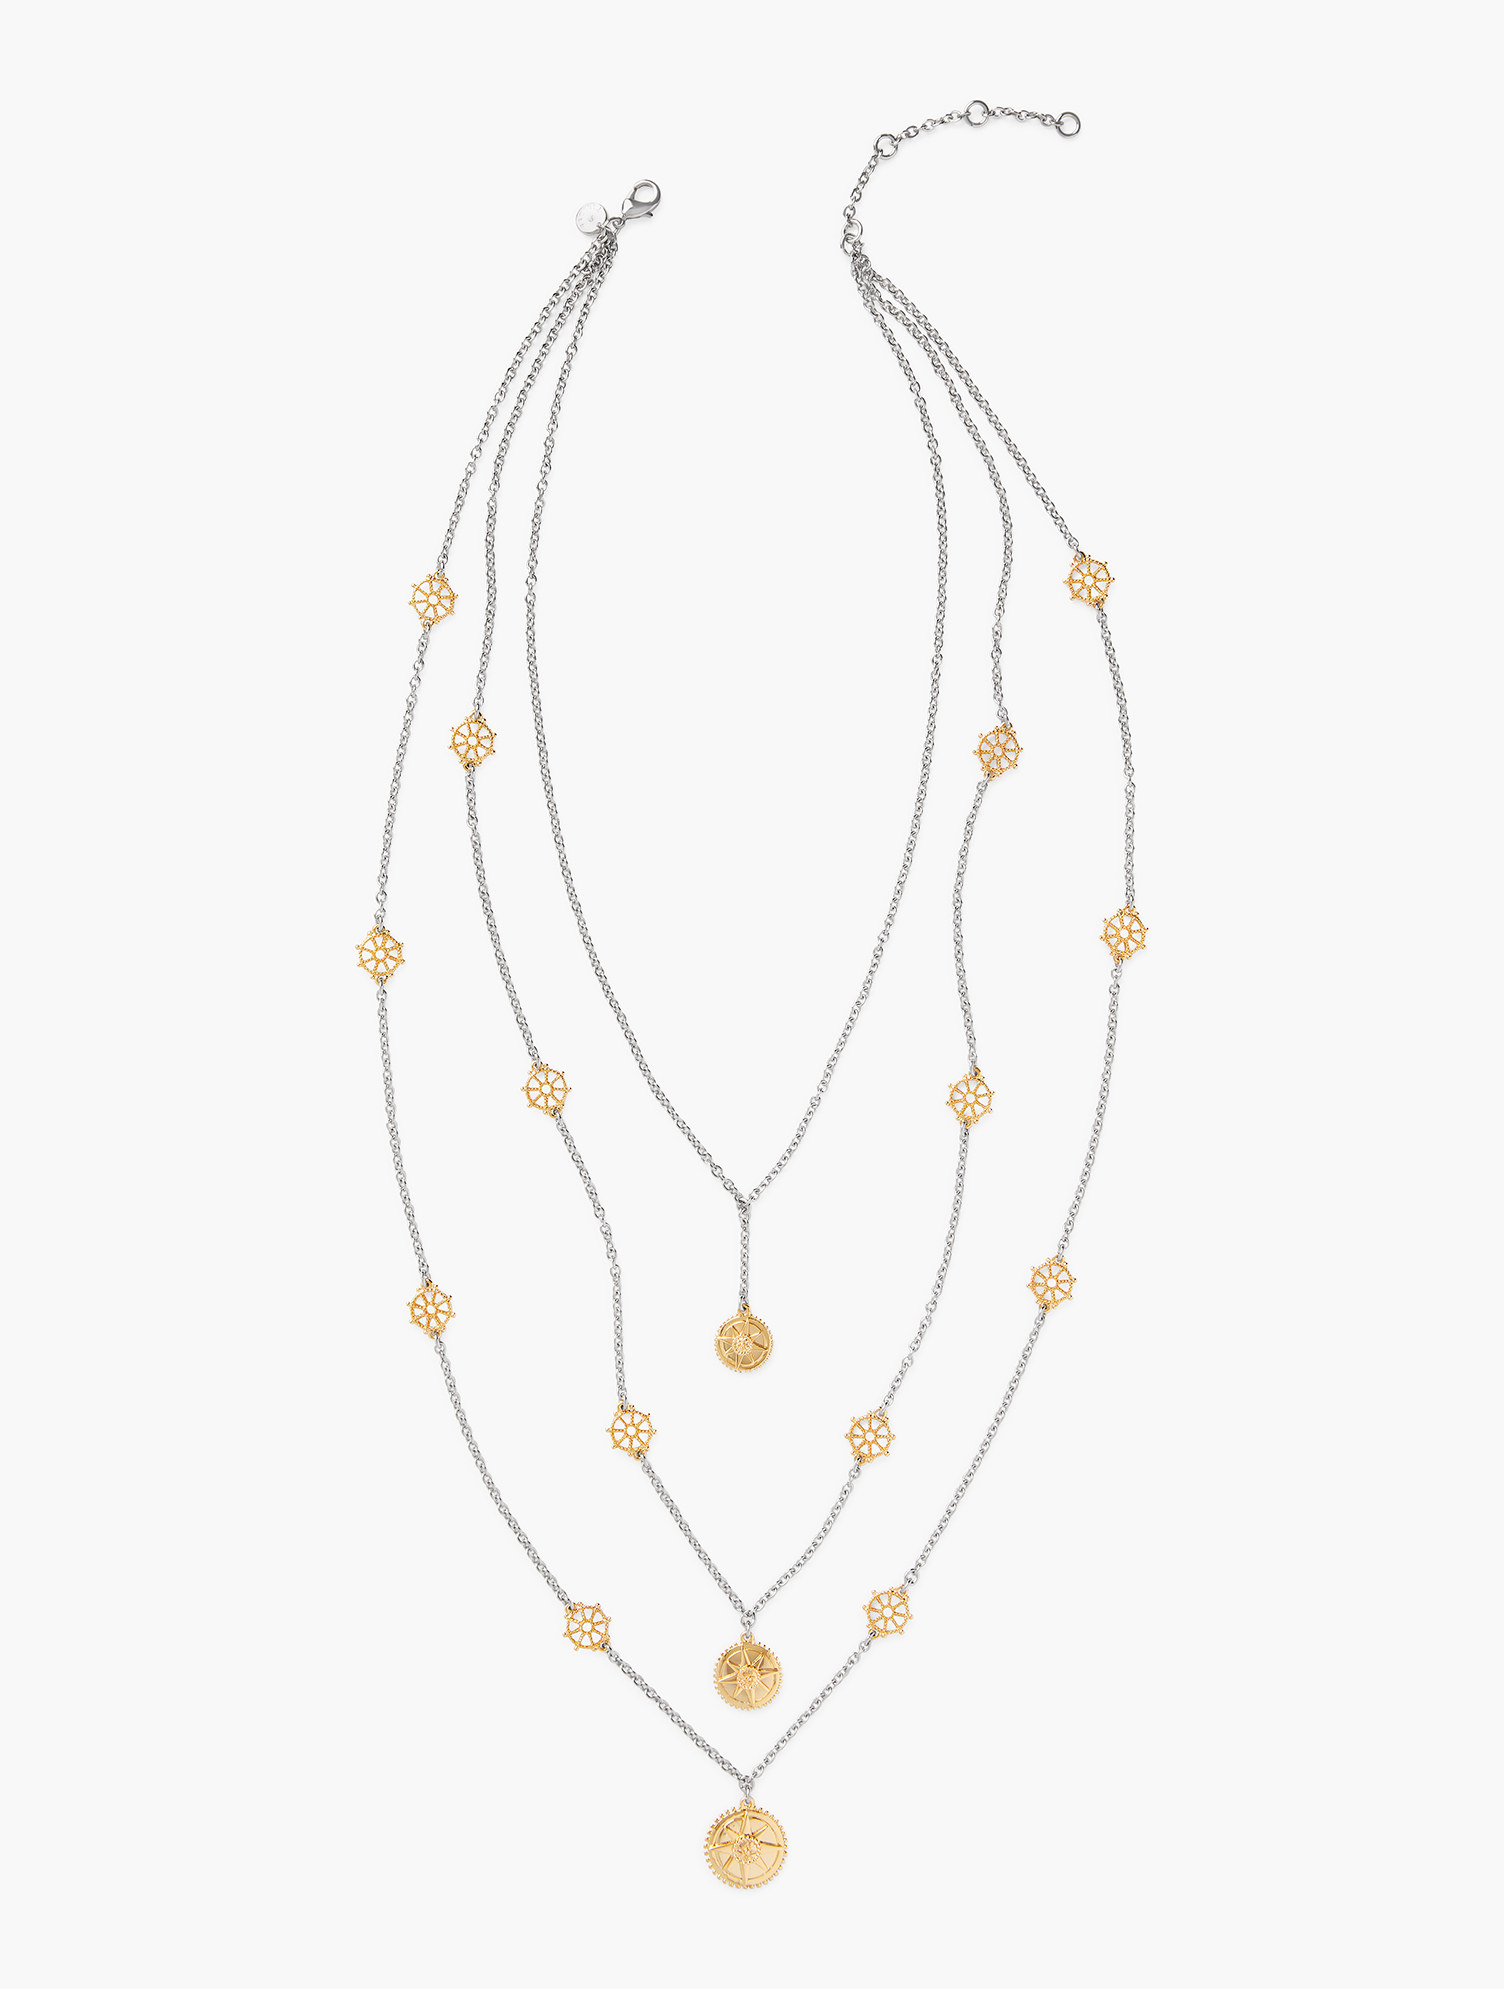 Gold metal wheels adorn this stunning layered style. Features Clasp: Lobster Imported Fit: 34 inches + 3 inches Extender Material: 50% Steel, 49% Zinc, 1% CZ Multi Tier Wheel Necklace - Gold/Silver - 001 Talbots